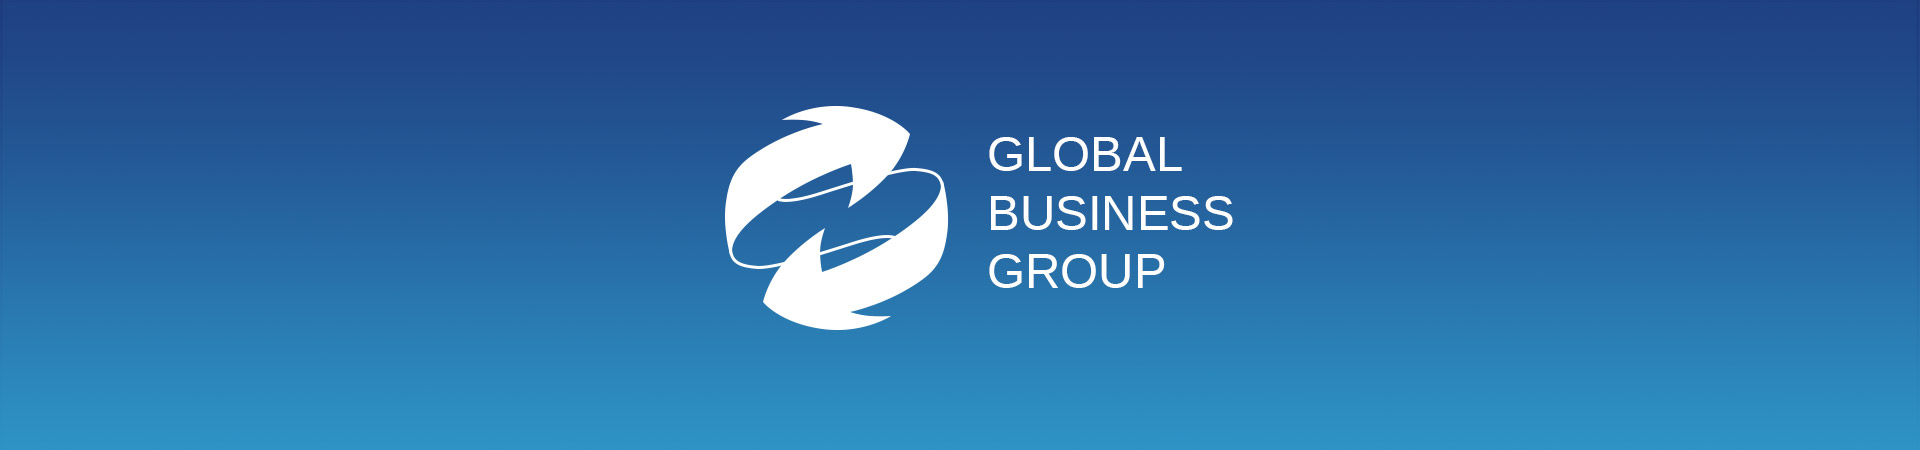 Global Business Group logo